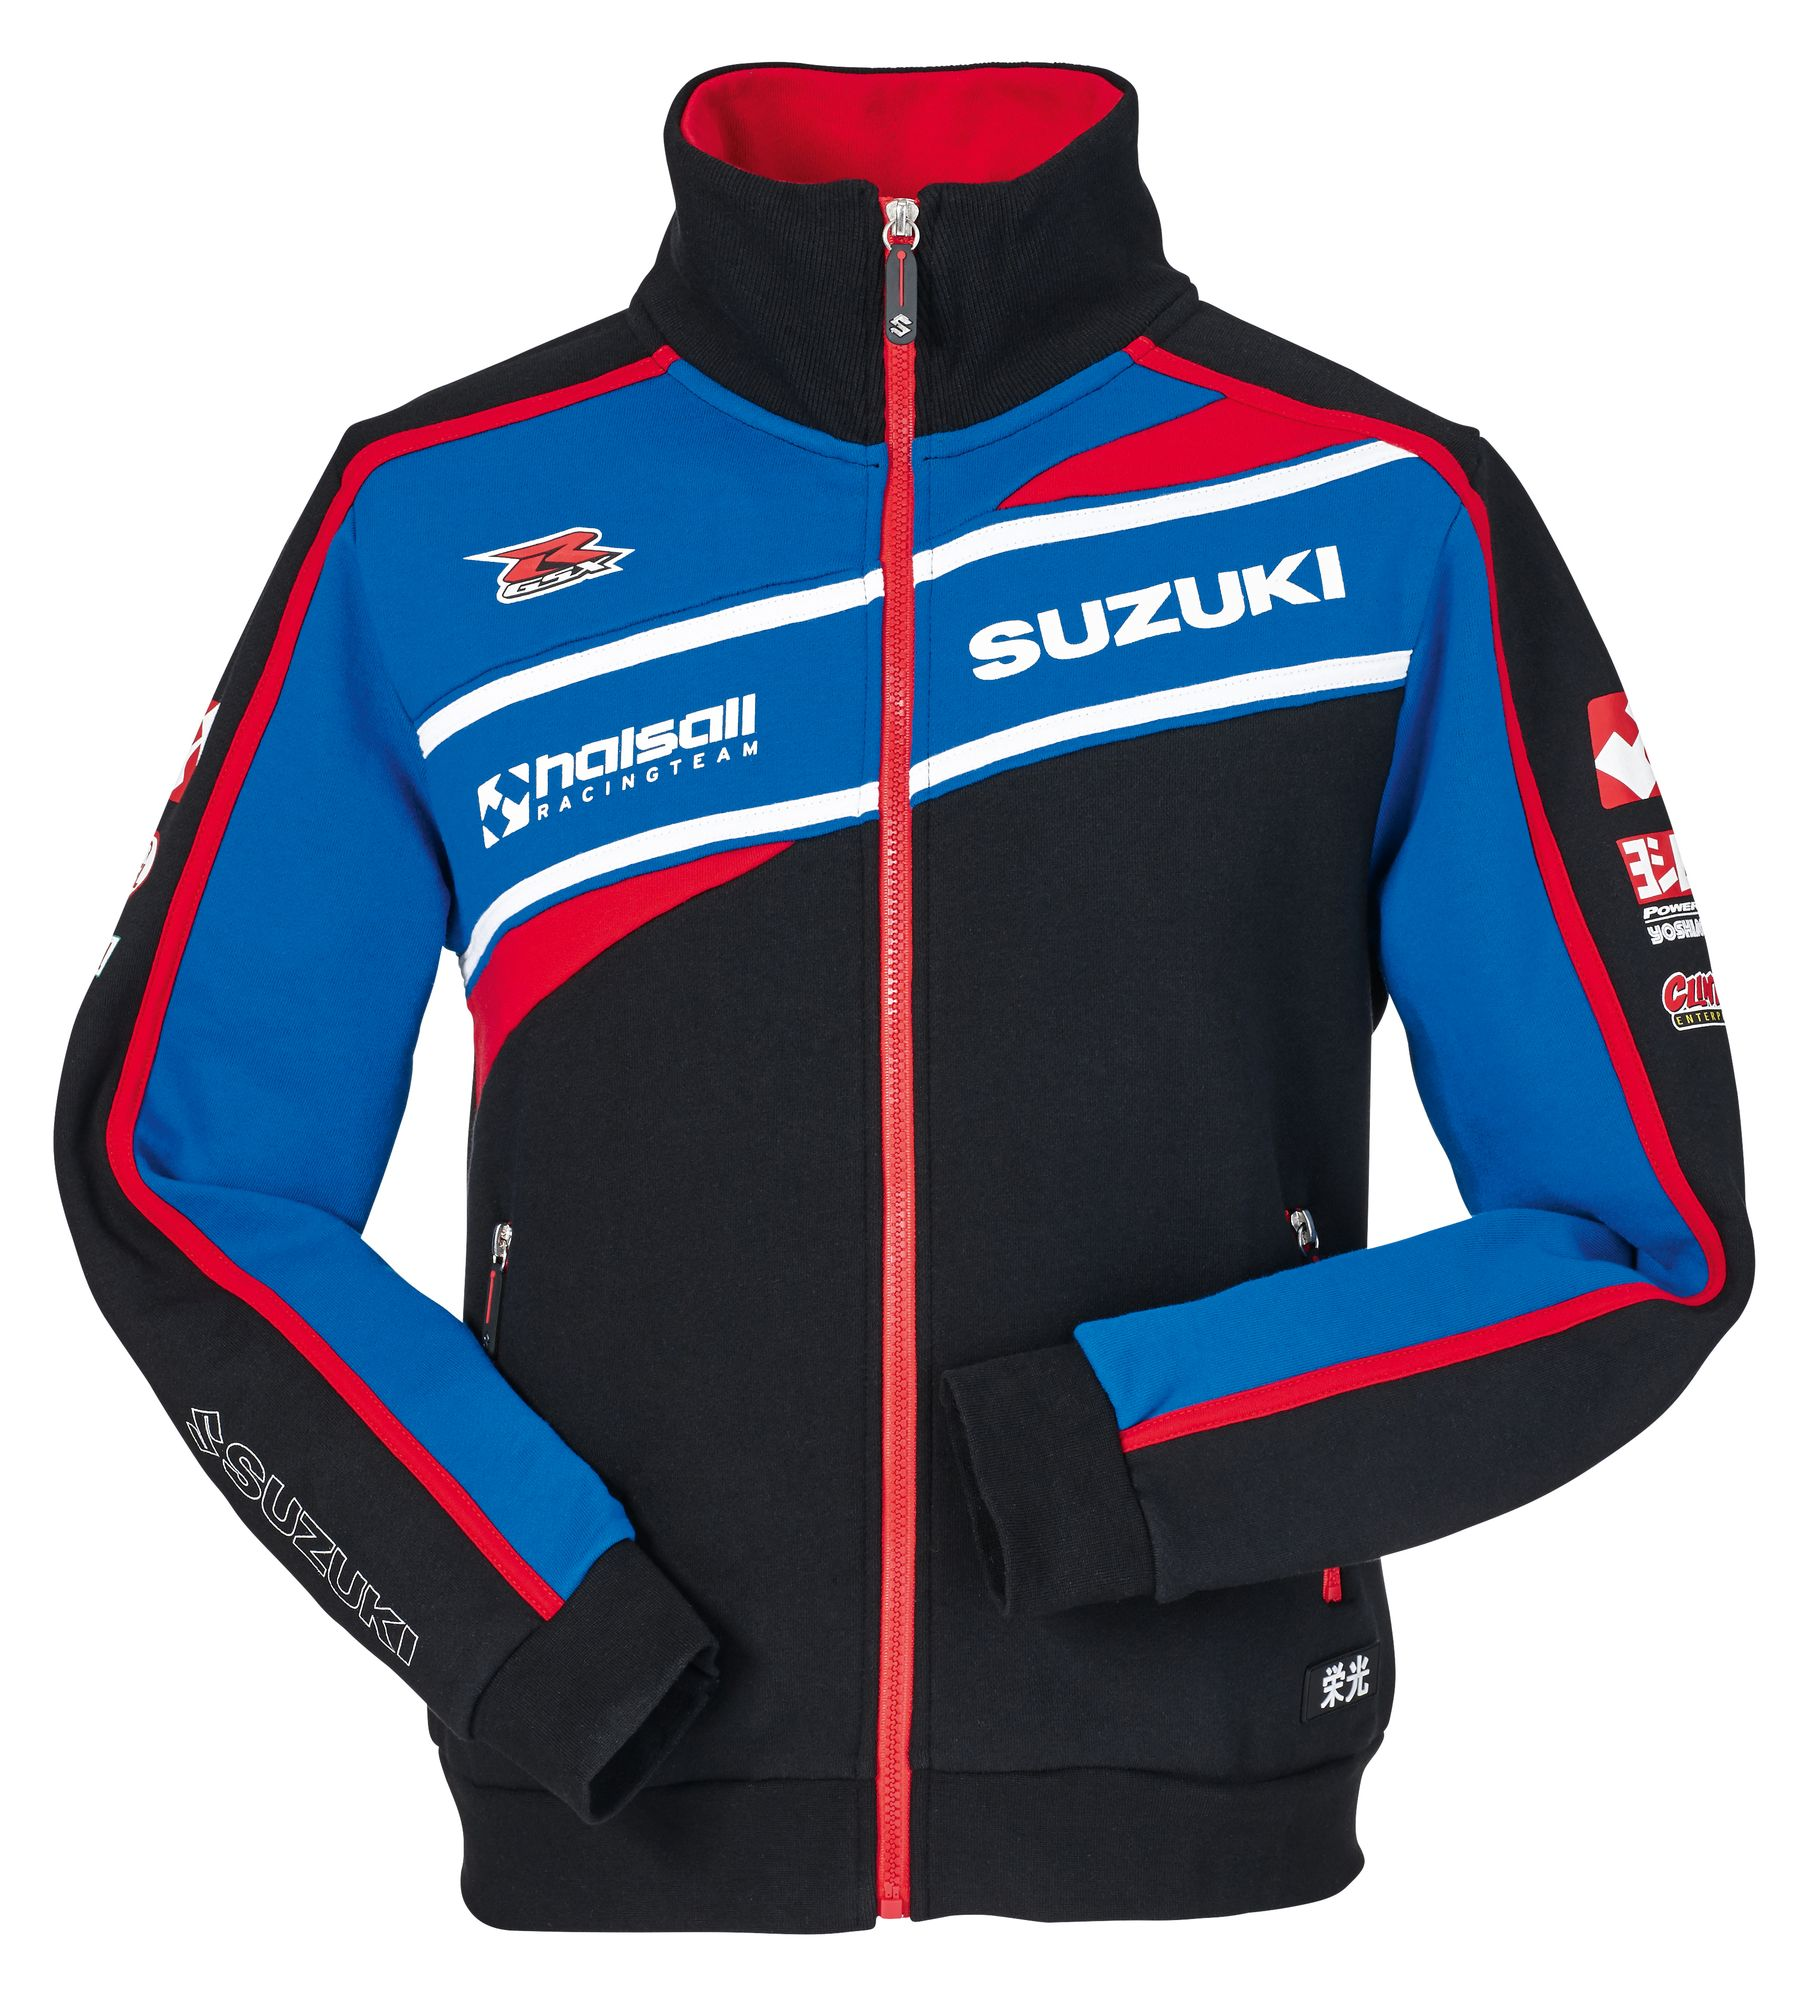 Suzuki Motorsport Collection 2015